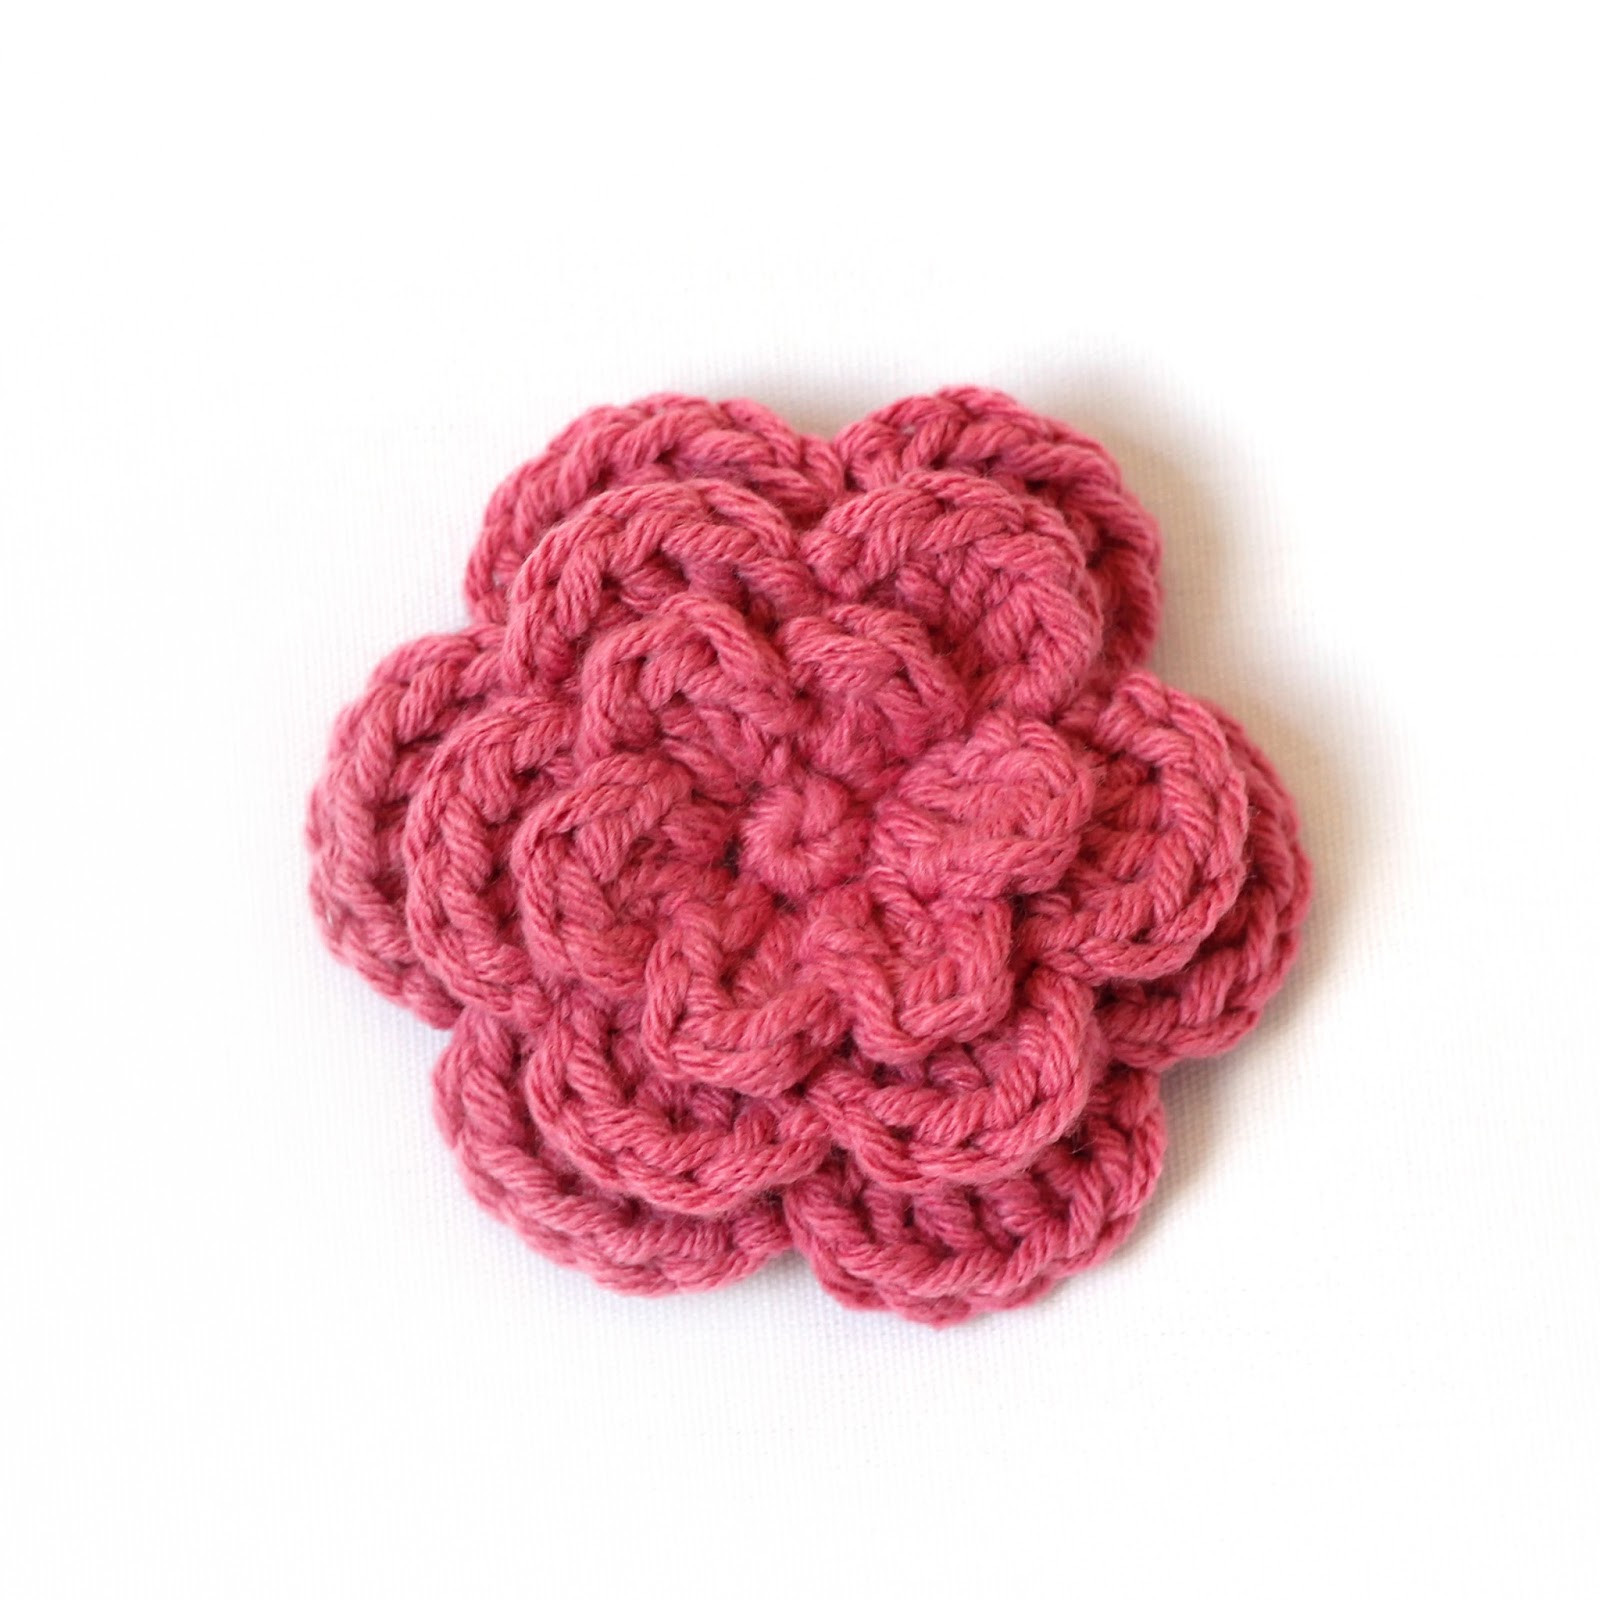 Easy Crochet Flower Patterns Free New Crocheting the Day Away Tutorials and Free Patterns Of Innovative 47 Images Easy Crochet Flower Patterns Free